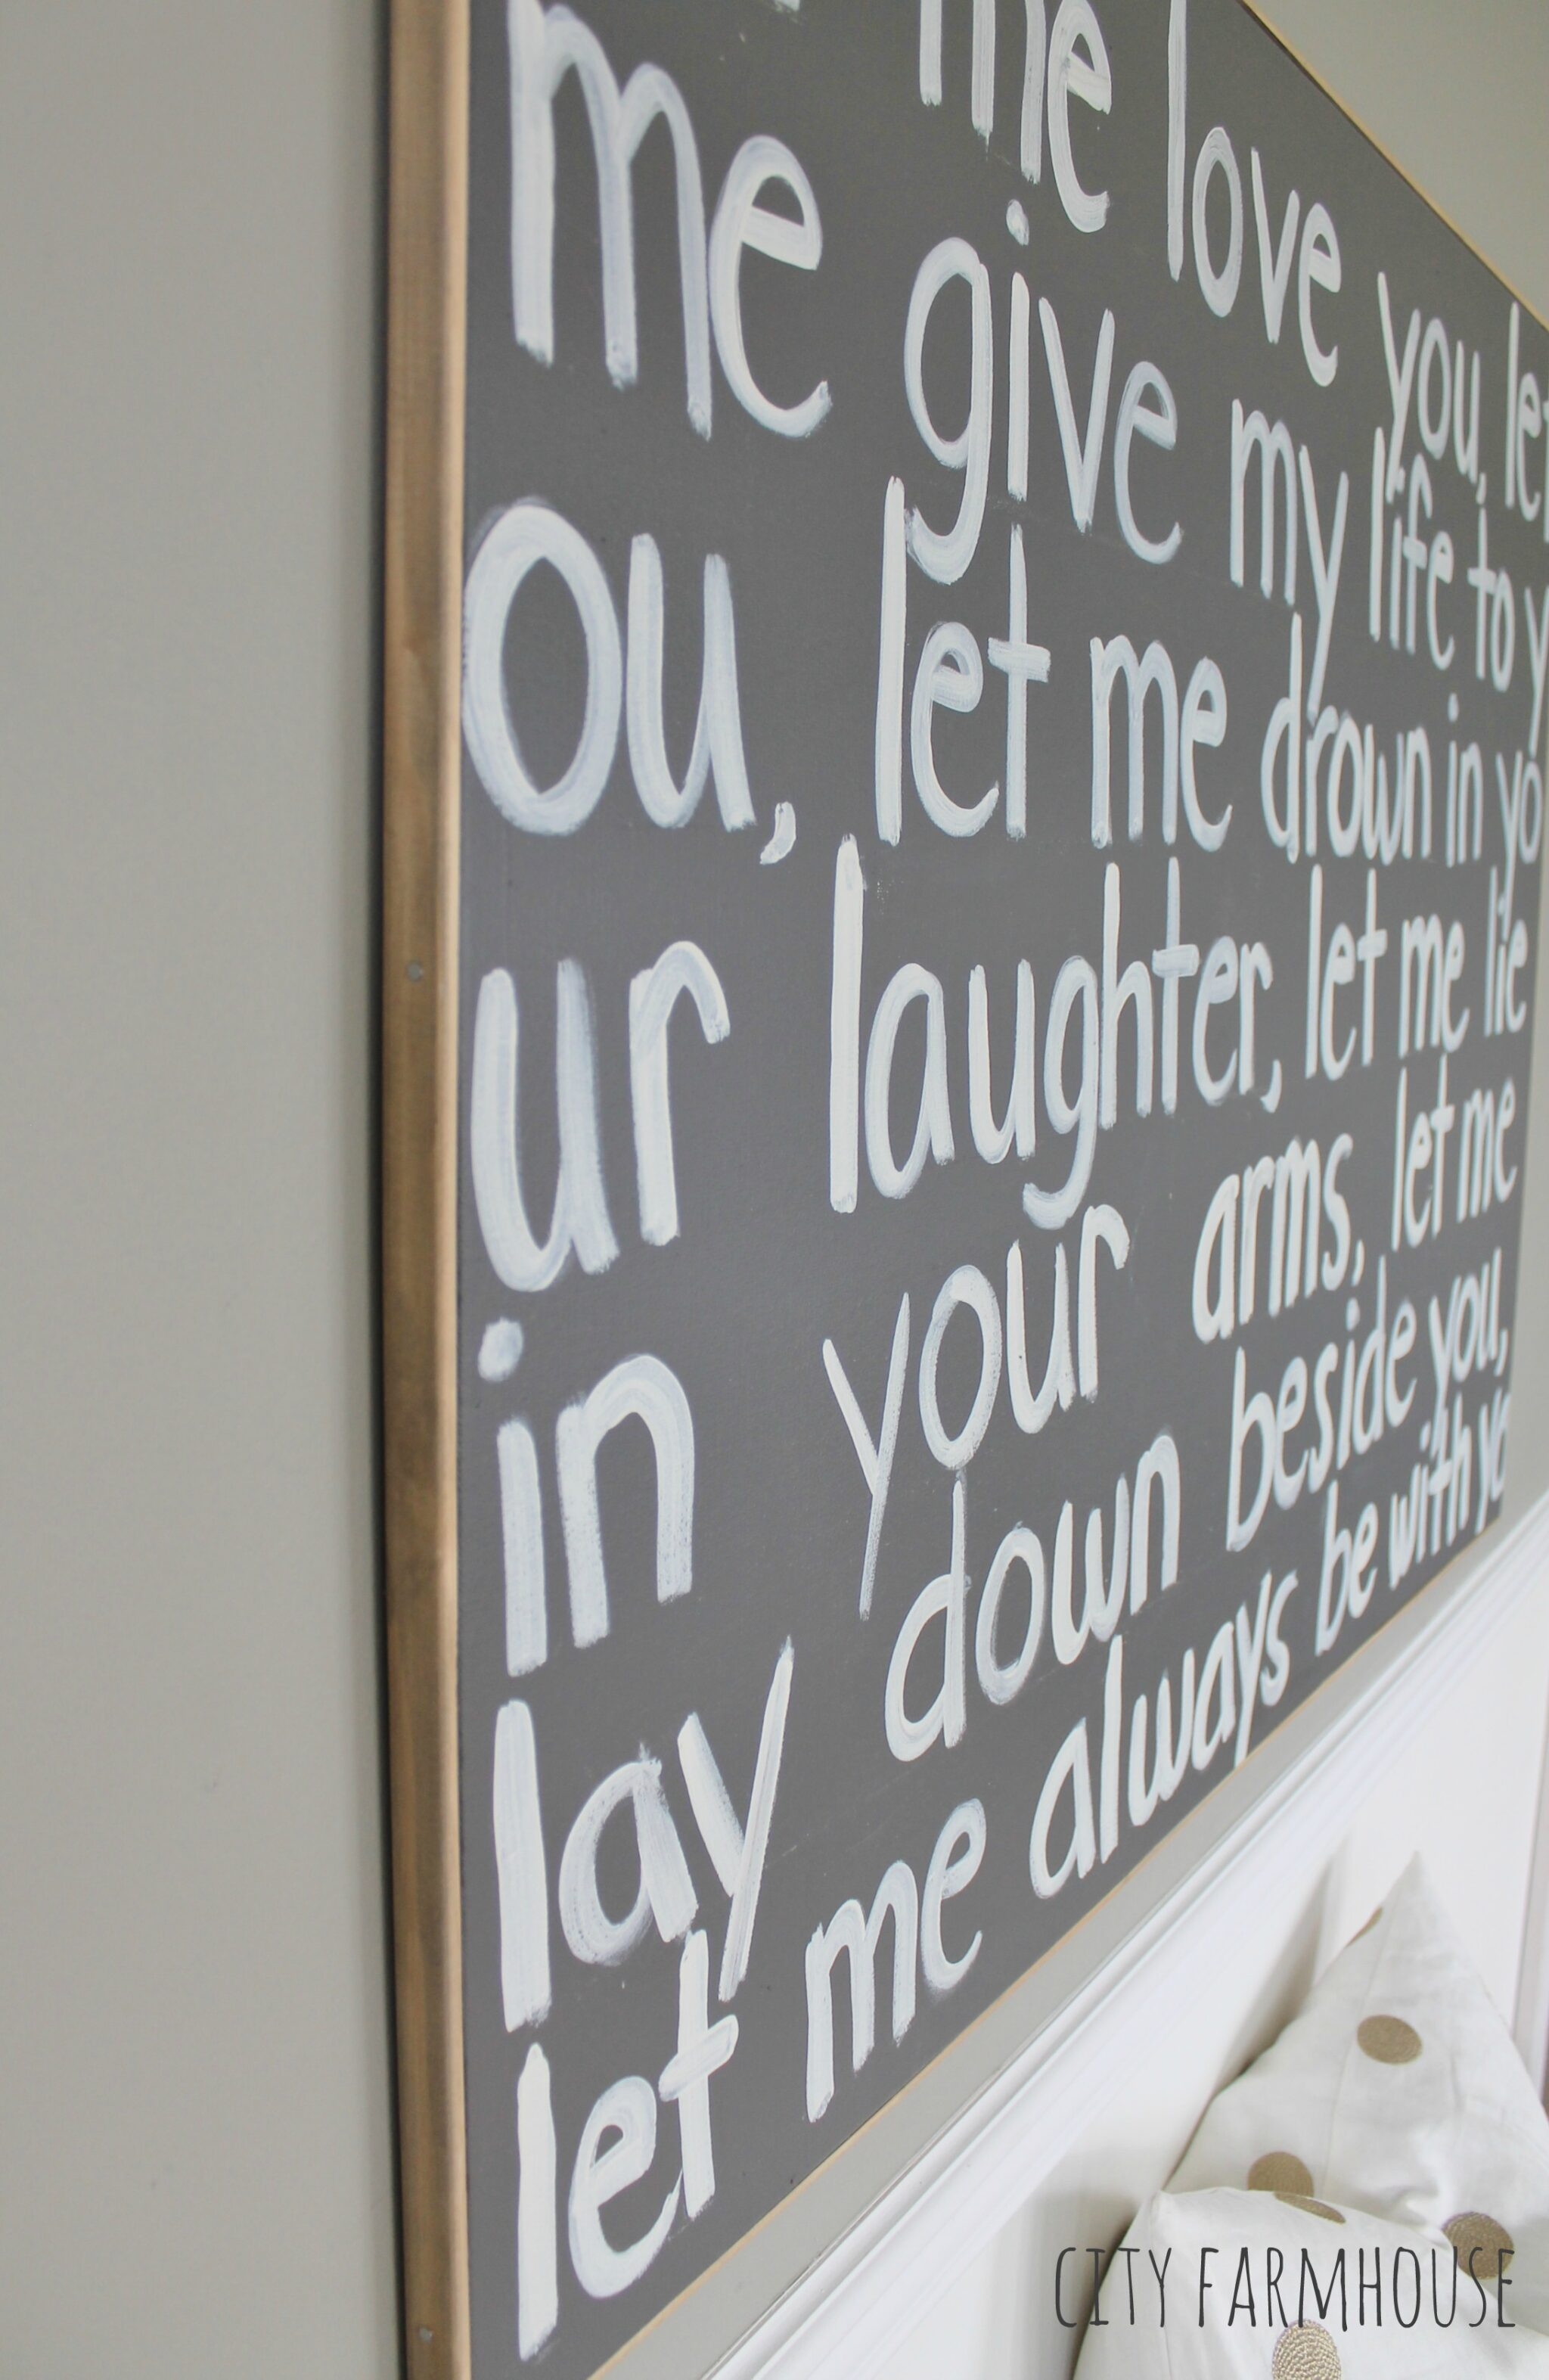 Diy Graffiti Art Using Wedding Song Lyrics A Gift To My